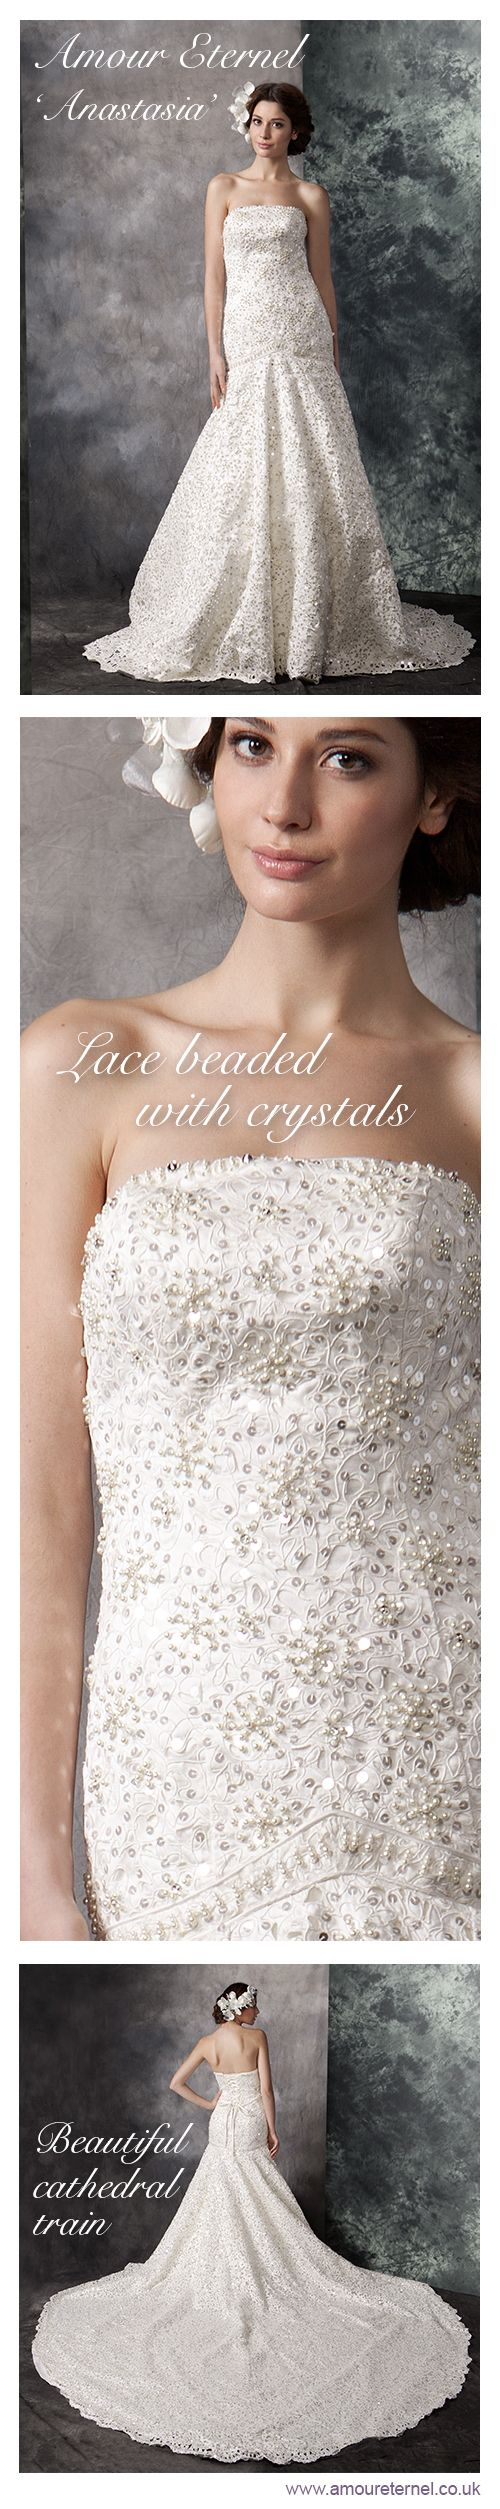 Wedding Dresses with WOW factor | Amour Eternel | www.amoureternel.co.uk